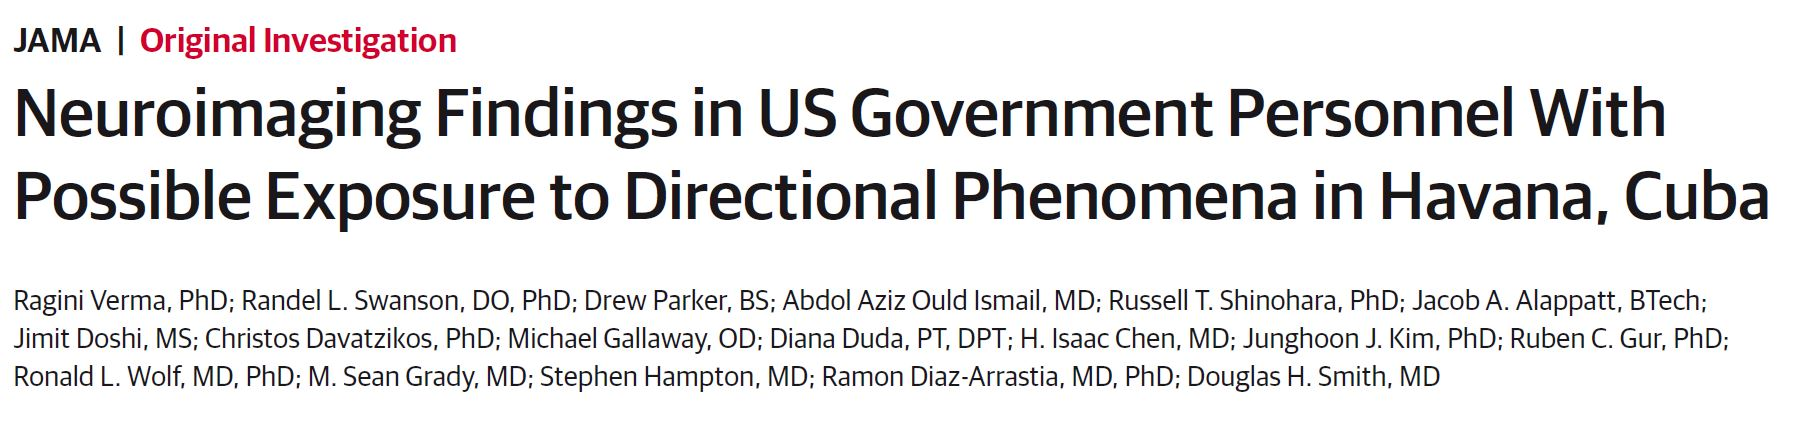 Neuroimaging Findings in US Government Personnel With Possible Exposure to Directional Phenomena in Havana, Cuba